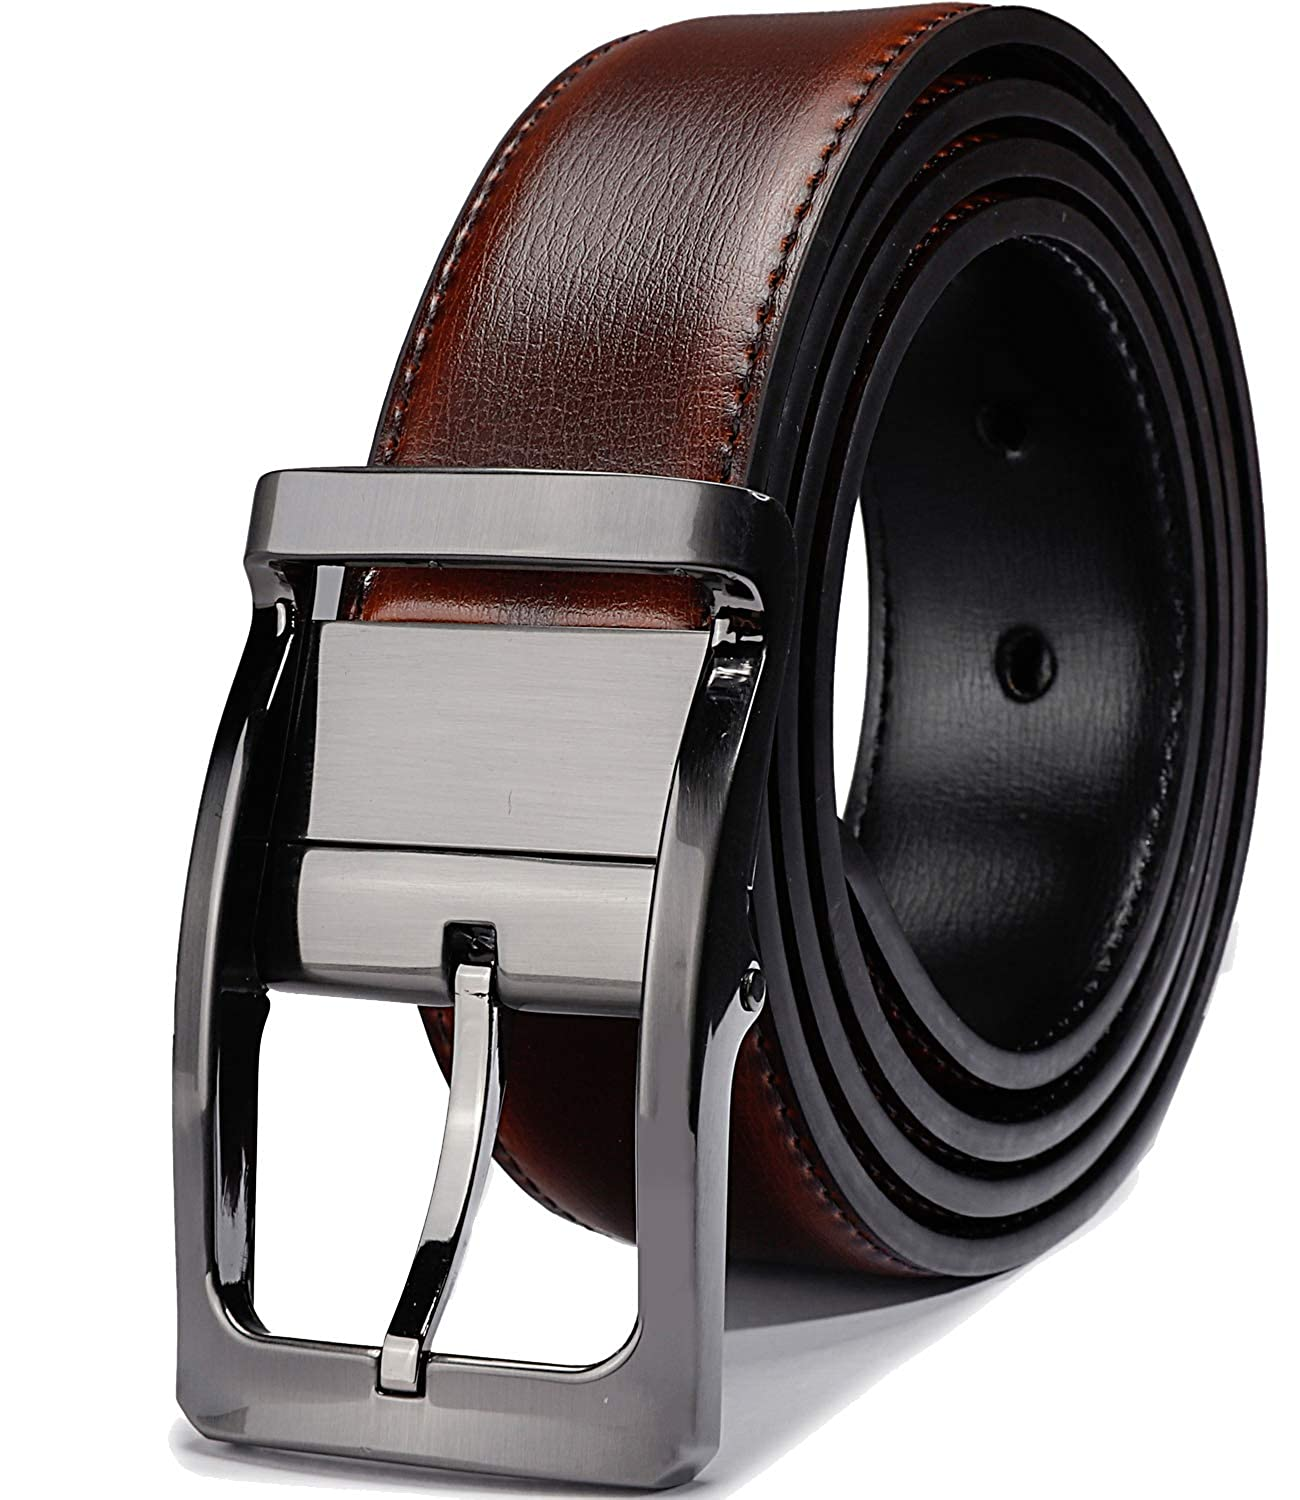 5364add63 Top 10 wholesale Reversible Leather Belt - Chinabrands.com